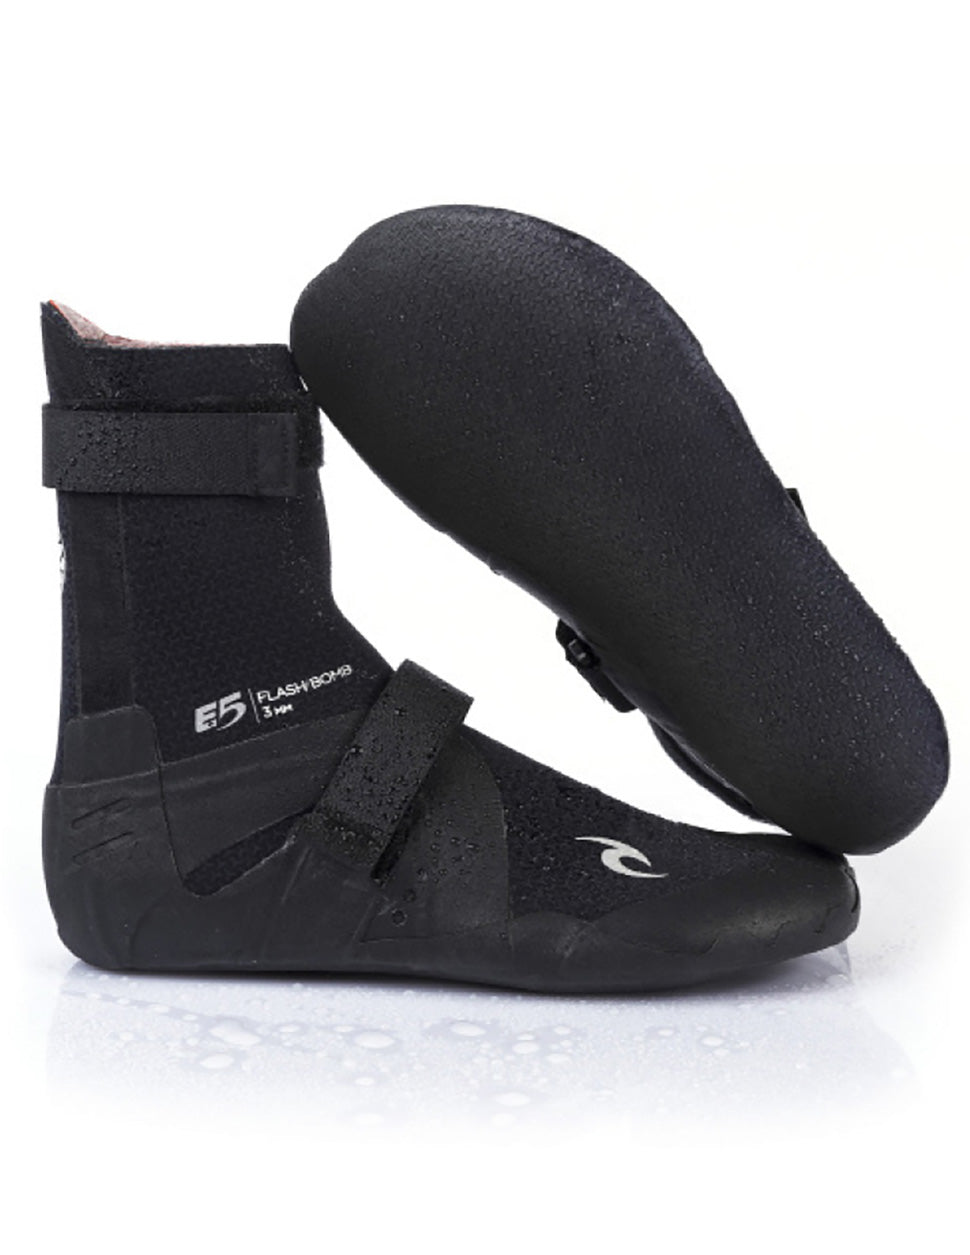 Rip Curl Flash Bomb 7mm Booties - Round Toe